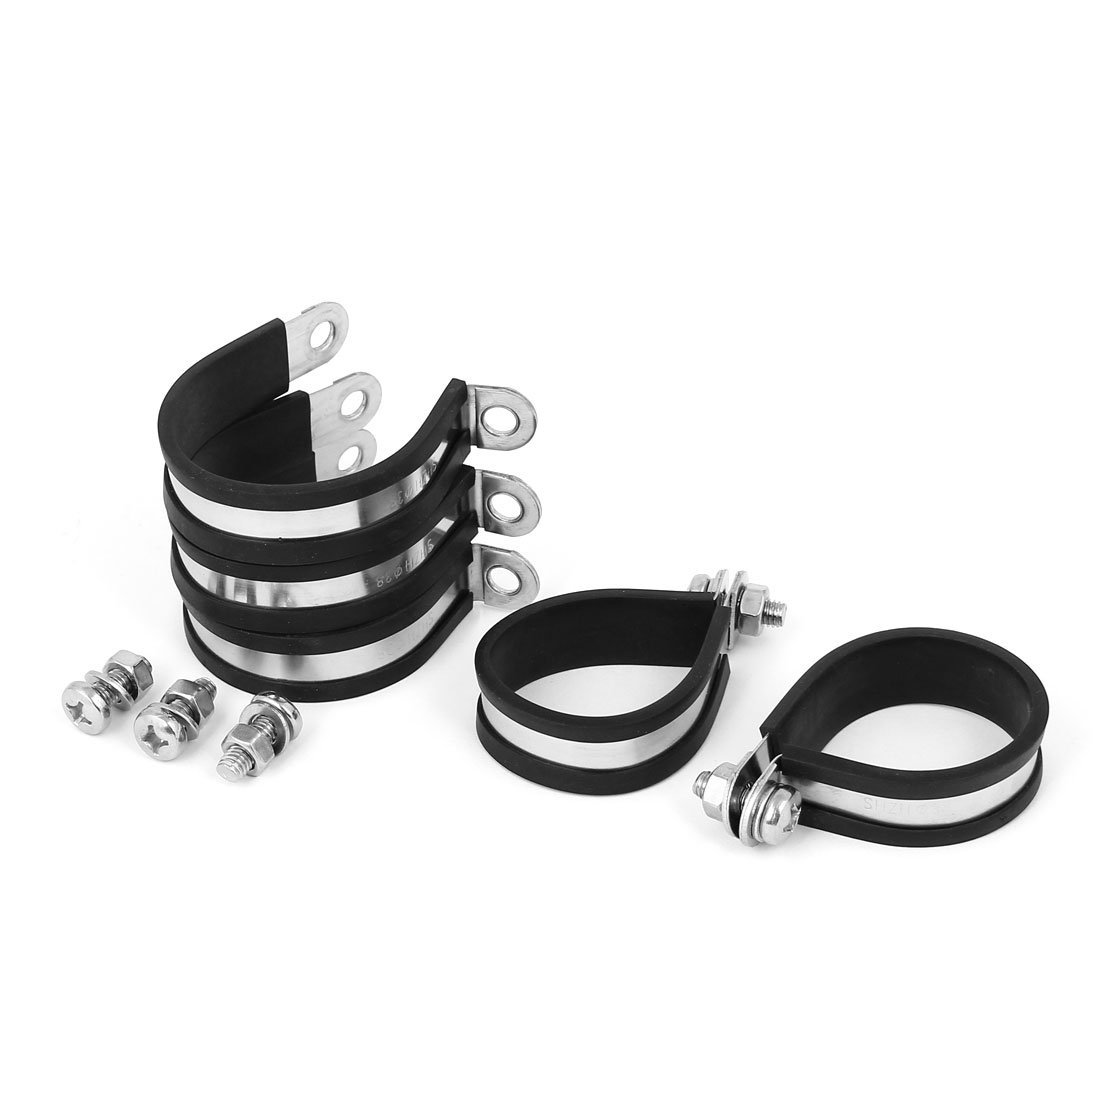 uxcell 35mm 304 Stainless Steel EPDM Rubber Lined P Clips Hose Pipe Clamp 5pcs